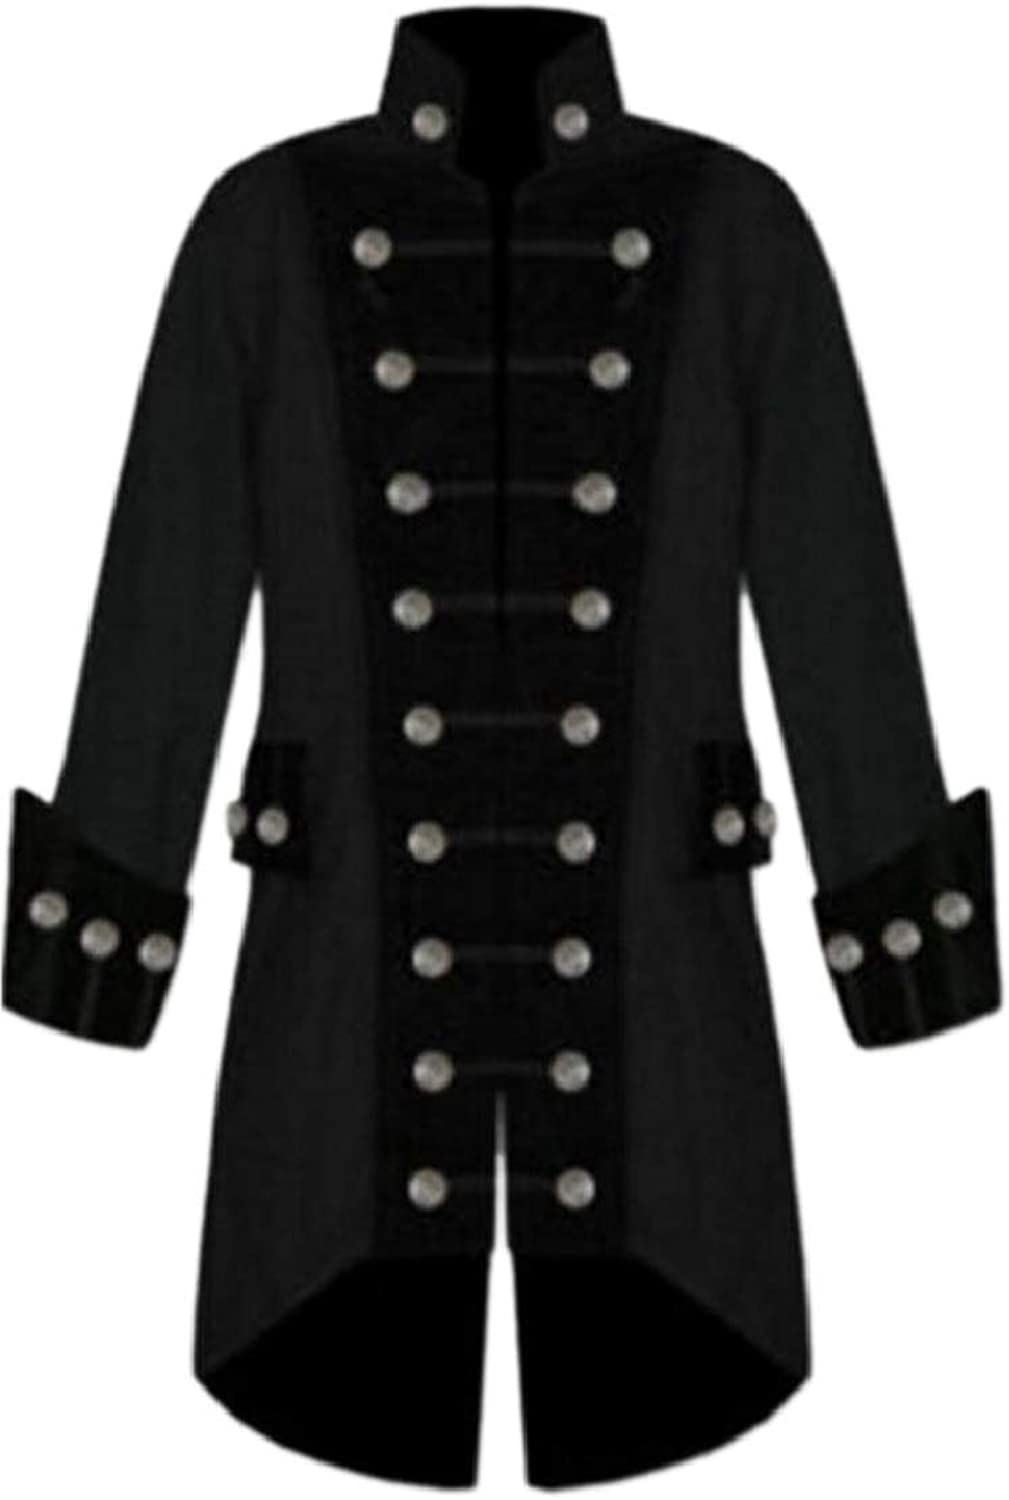 14573cb3e4f4 Pujingge-CA Pujingge-CA Pujingge-CA Mens Gothic Double Breasted Steampunk  Victorian Frock Coats 04475c